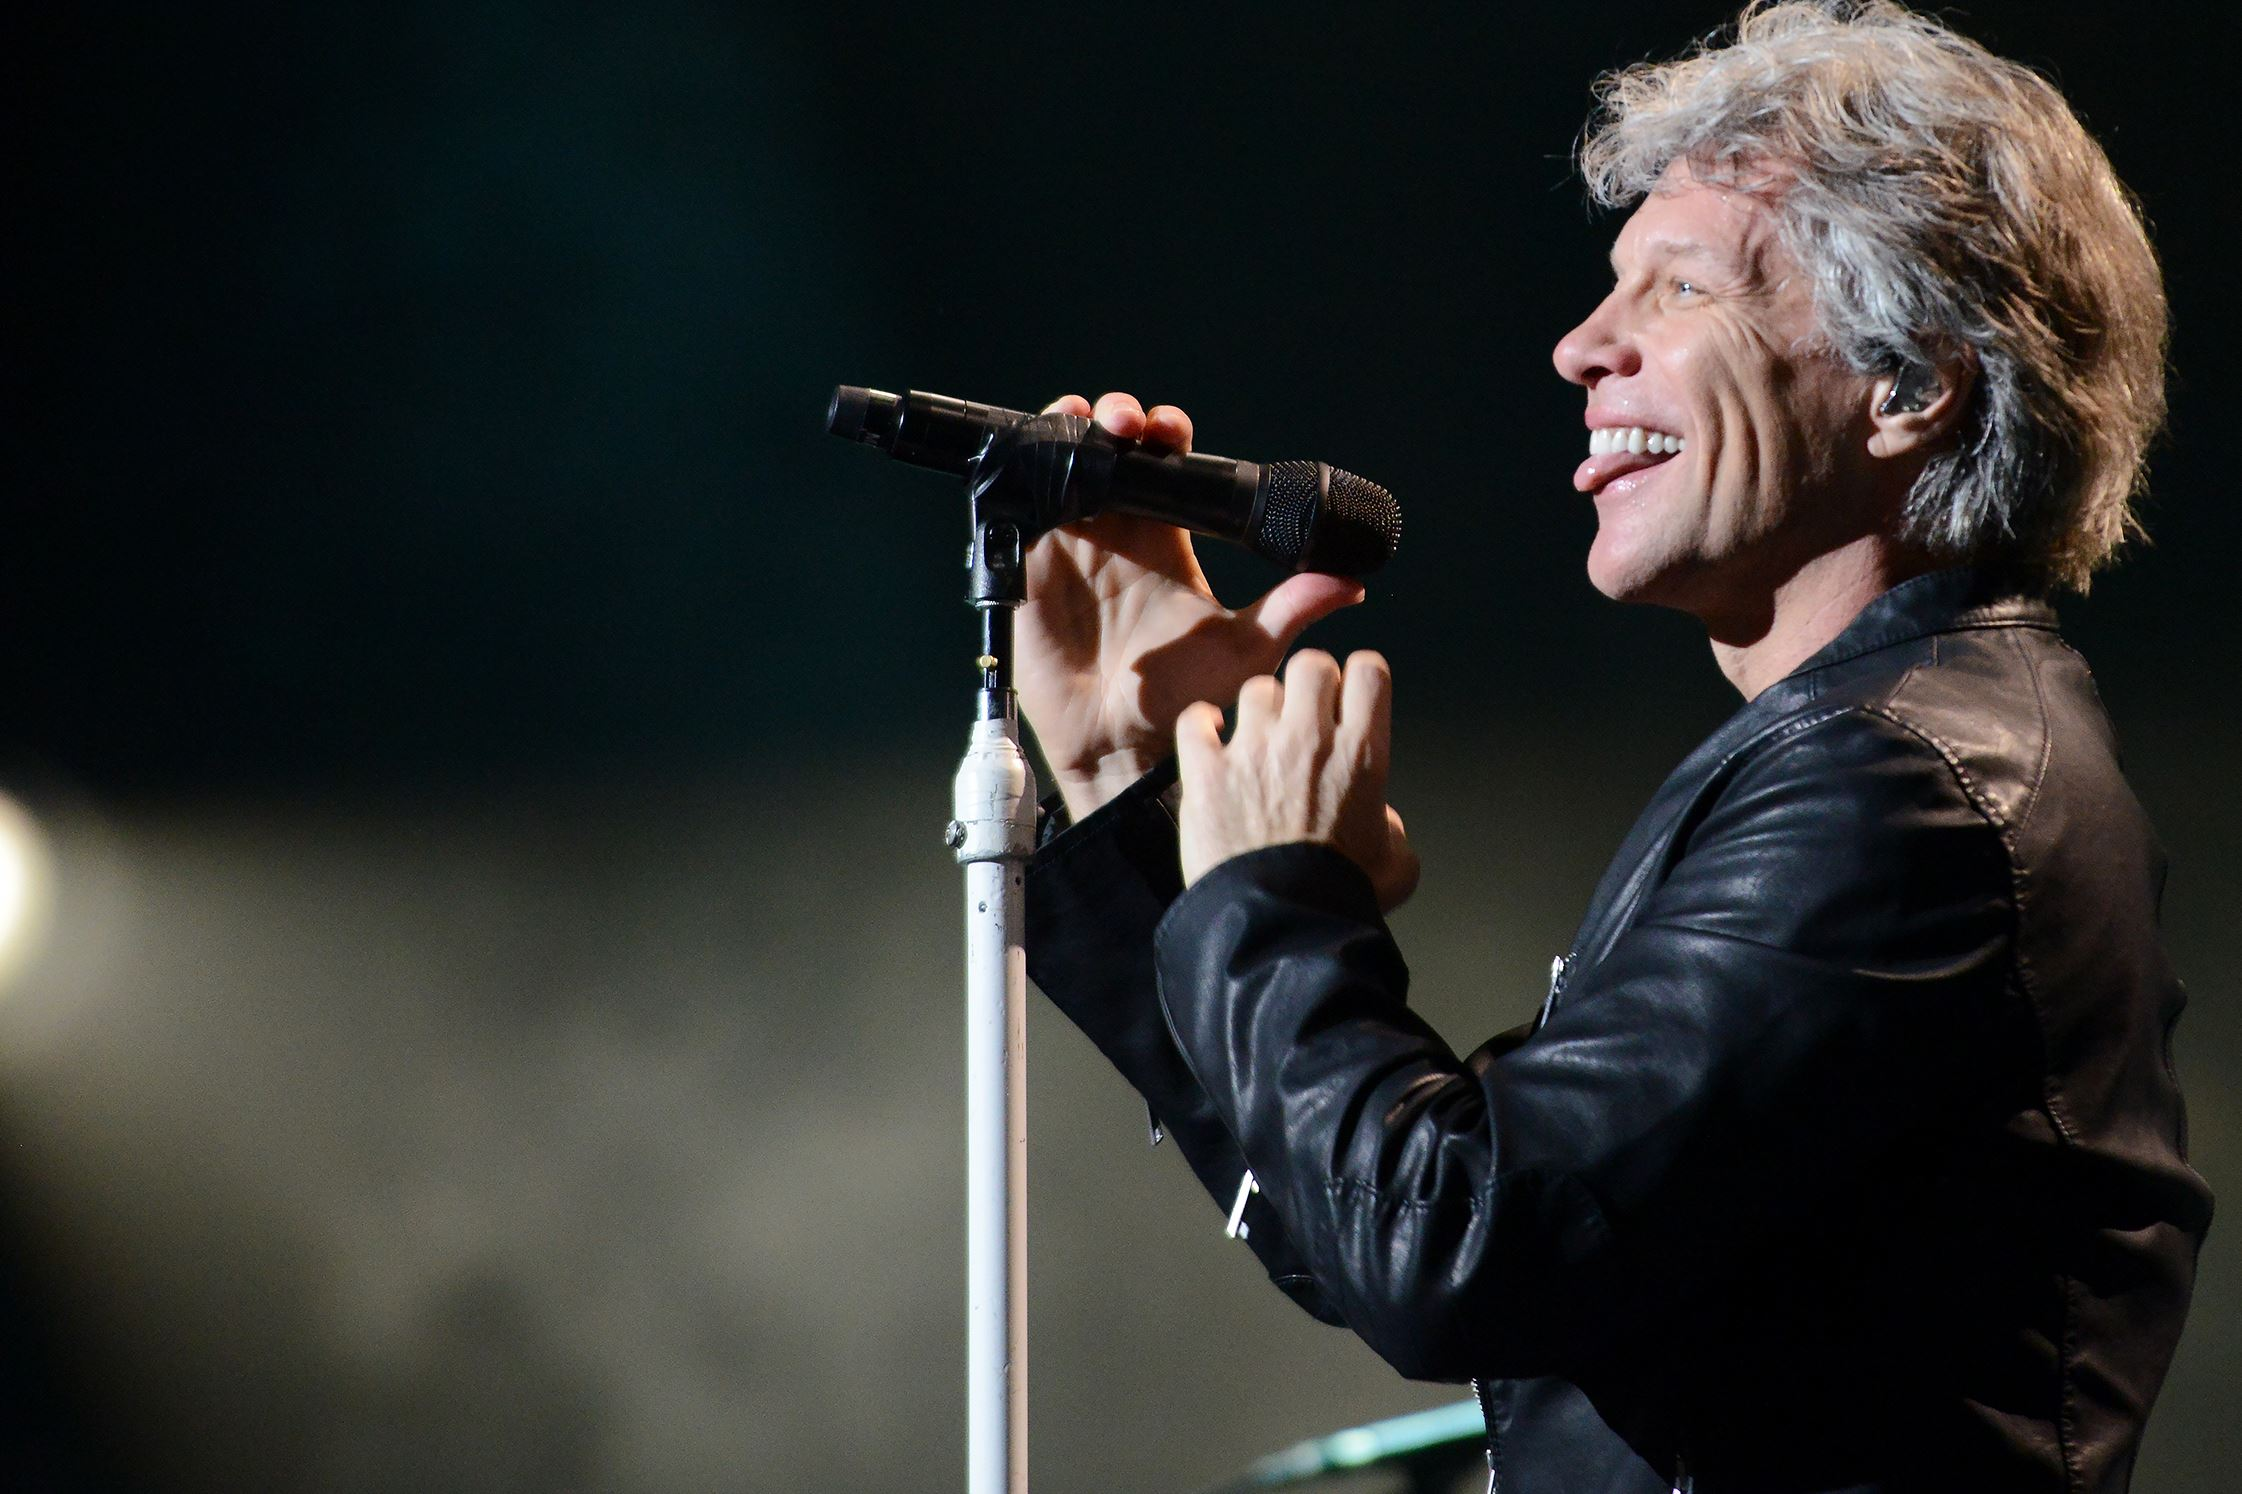 Bon Jovi, battling bronchitis, postpones his weekend shows